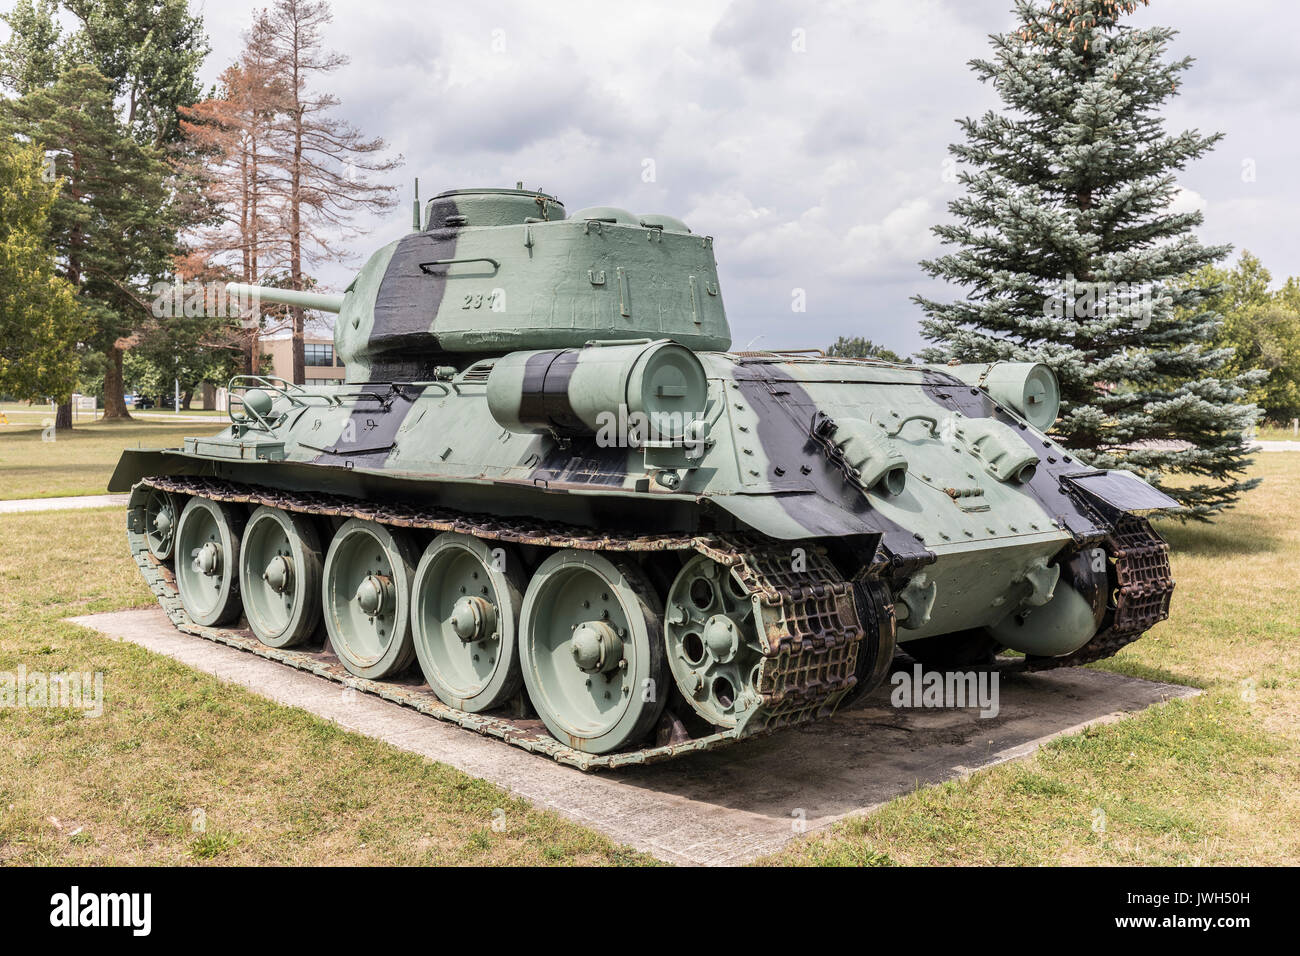 world war 2 tank stockfotos world war 2 tank bilder alamy. Black Bedroom Furniture Sets. Home Design Ideas